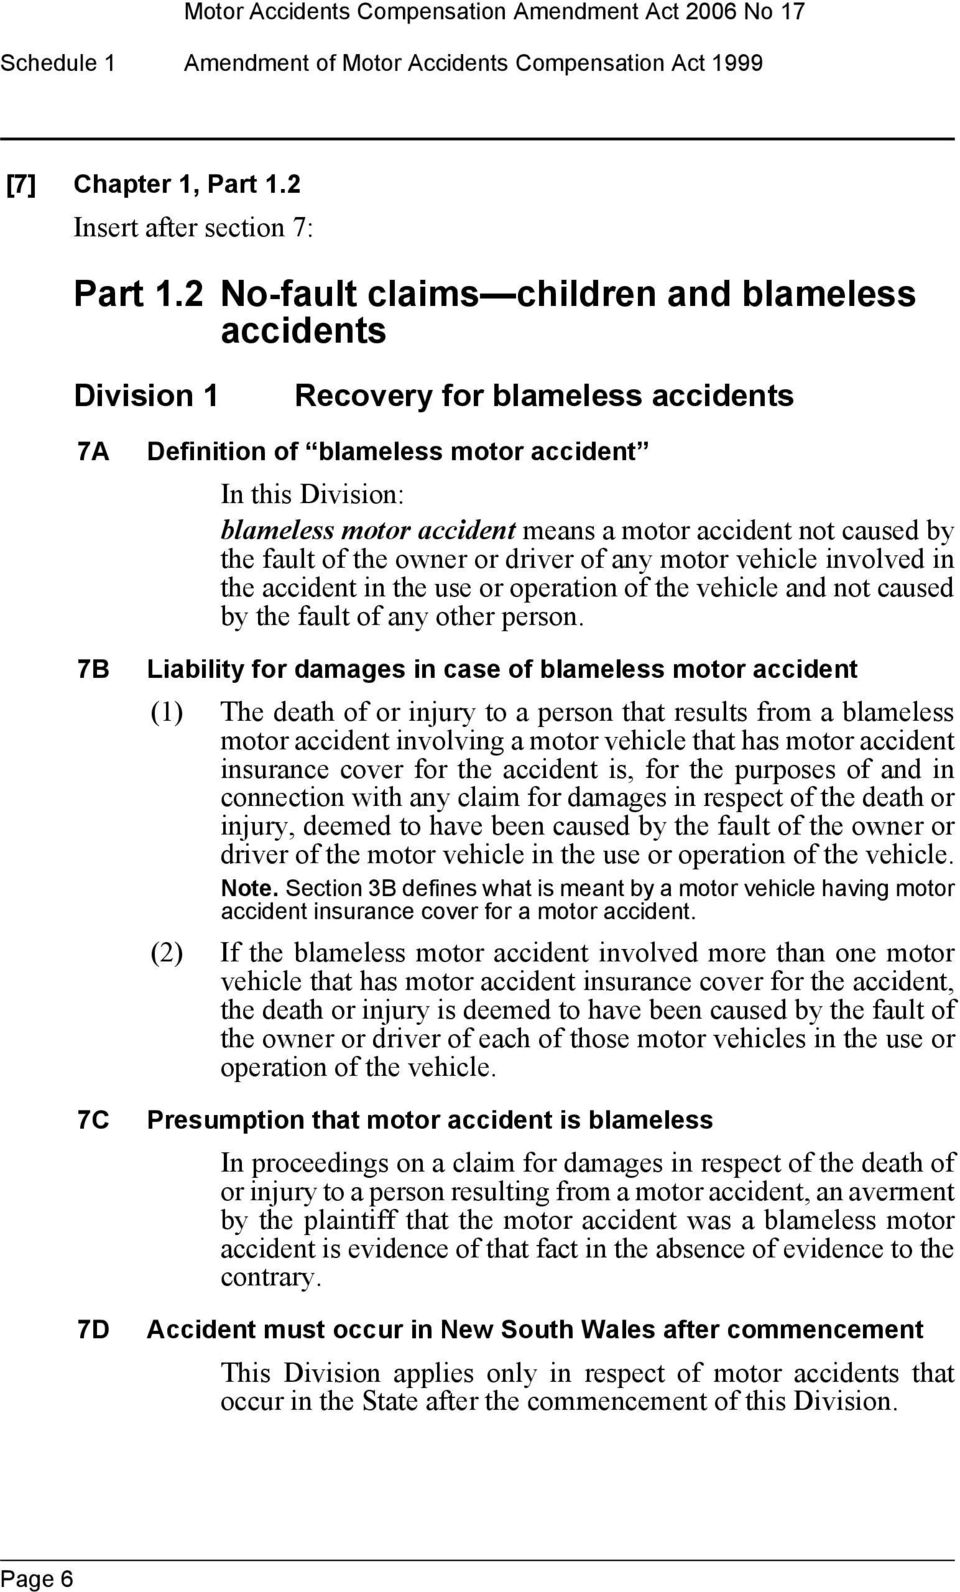 motor accident not caused by the fault of the owner or driver of any motor vehicle involved in the accident in the use or operation of the vehicle and not caused by the fault of any other person.